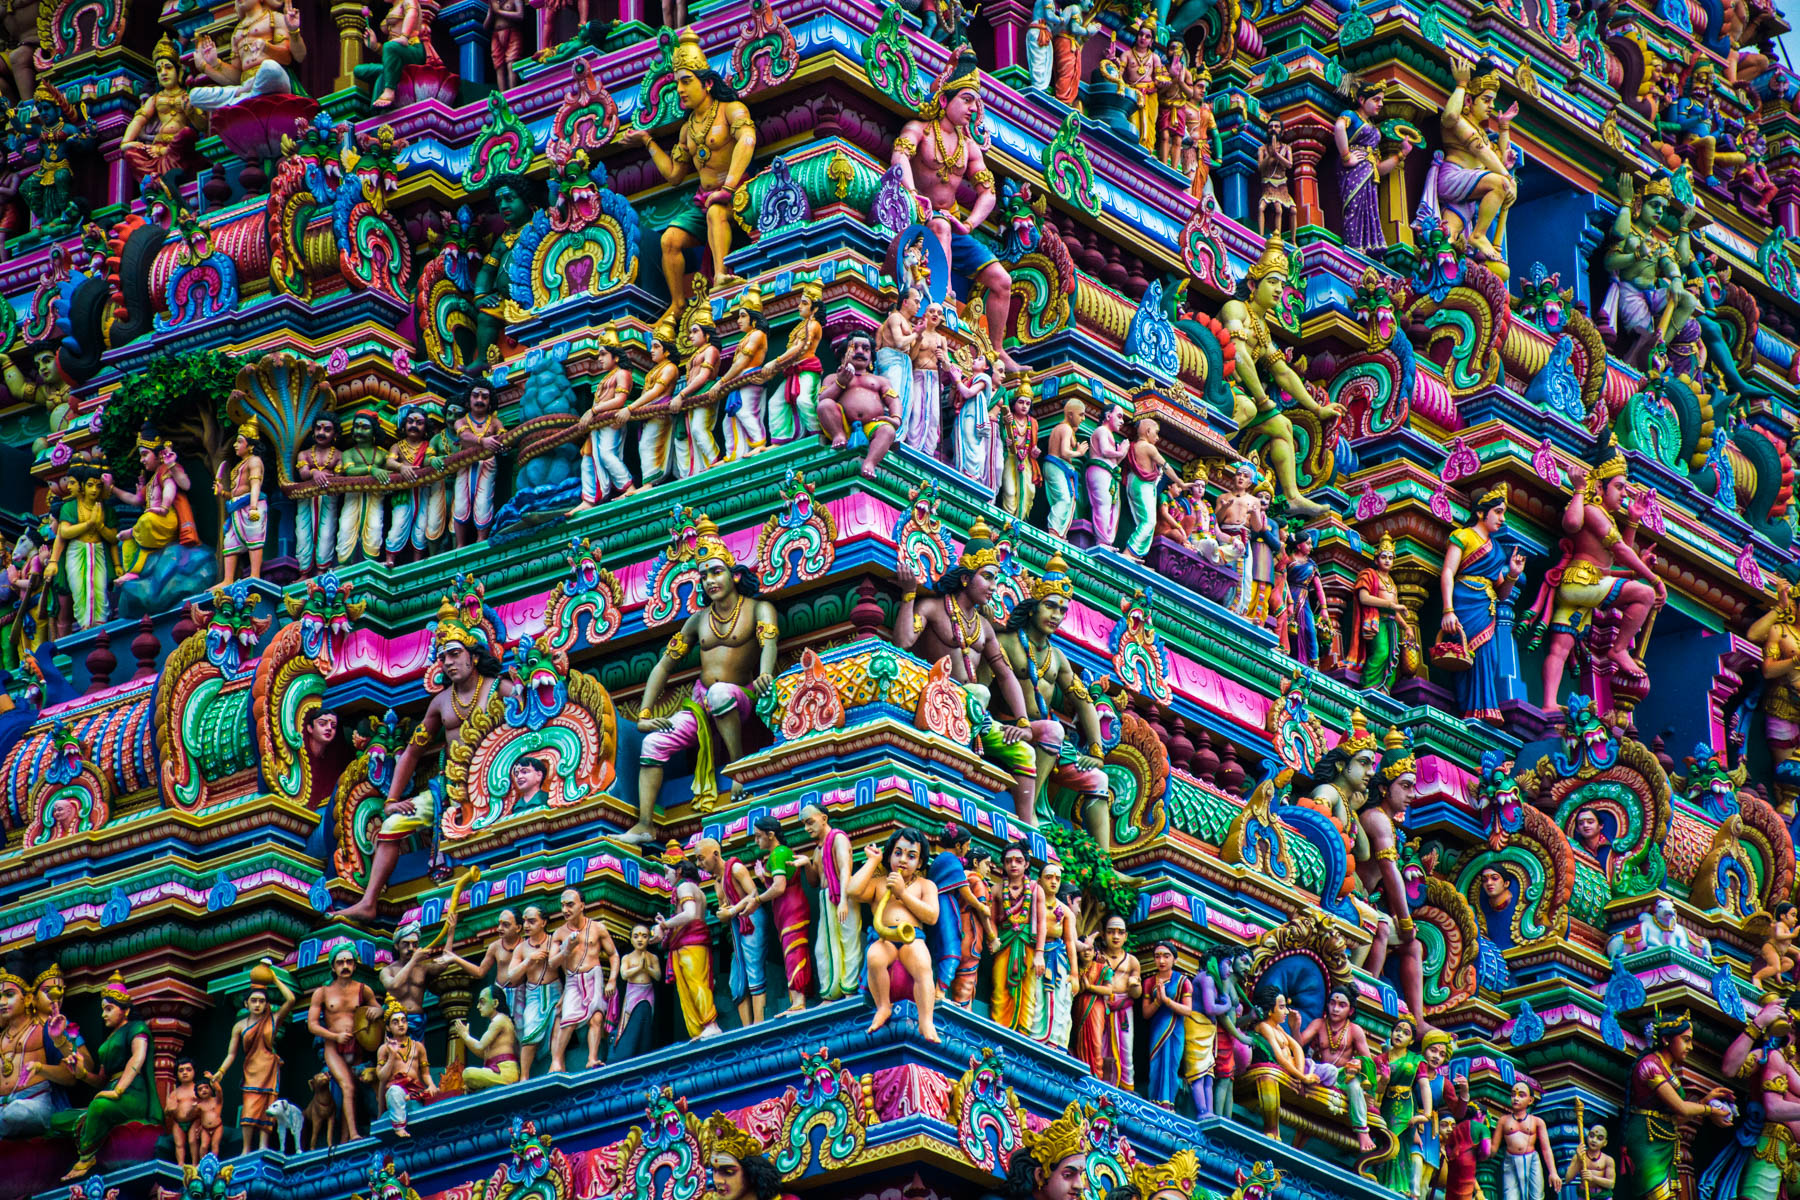 Reasons we fell in love with India - Kapaleeswarar Temple in Chennai, Tamil Nadu state, India - Lost With Purpose travel blog